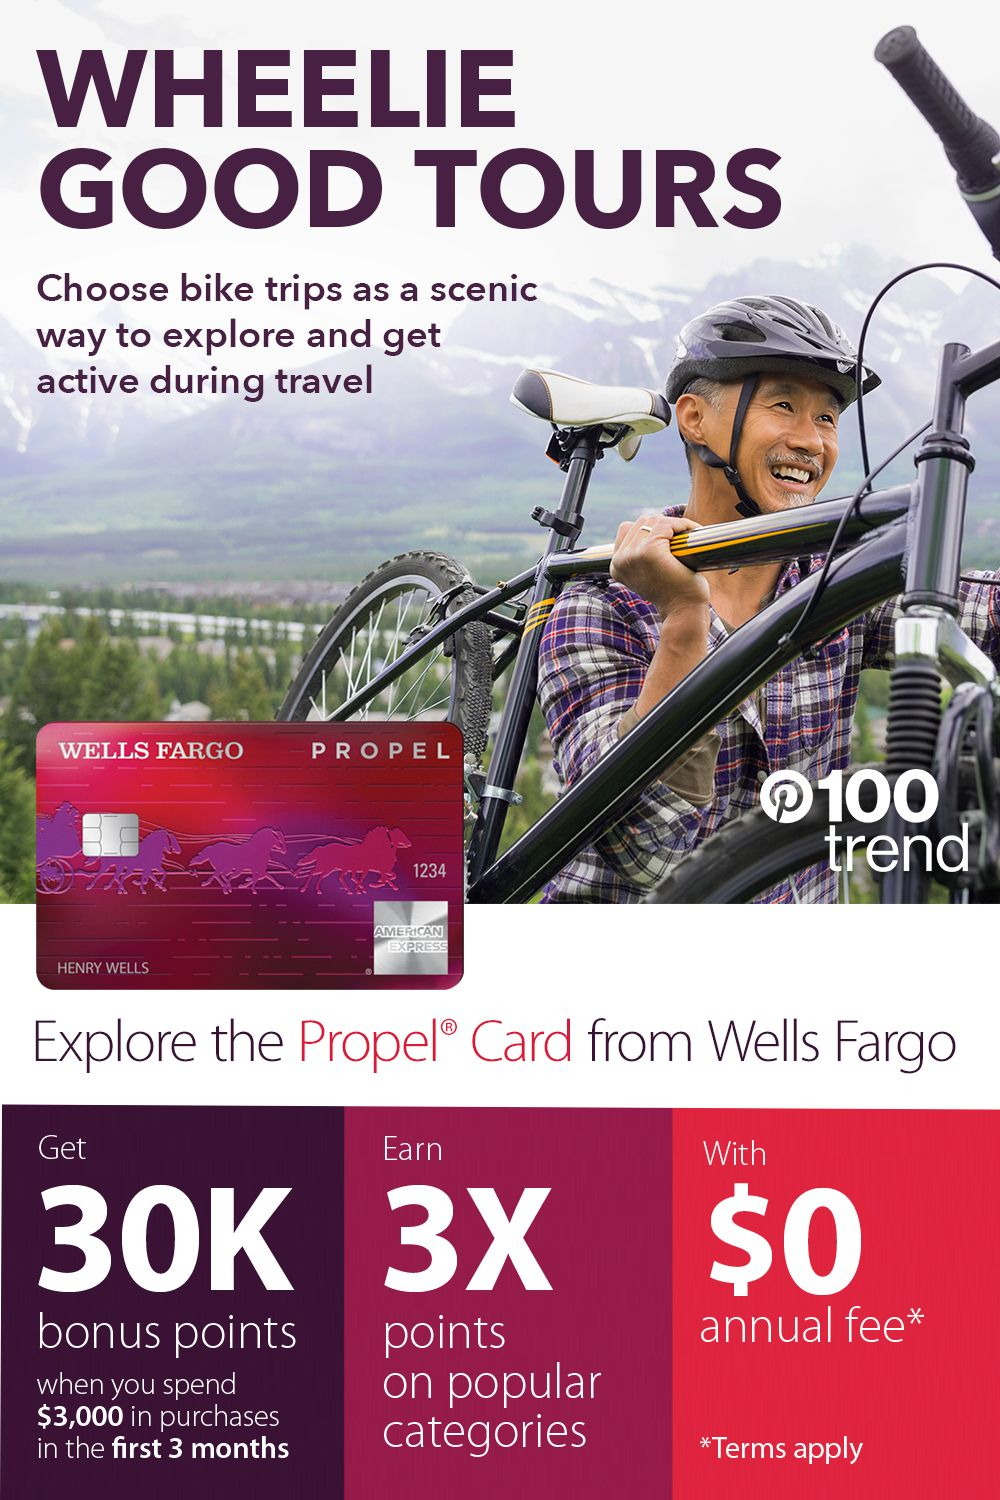 Choose bike trips as a scenic way to explore and get